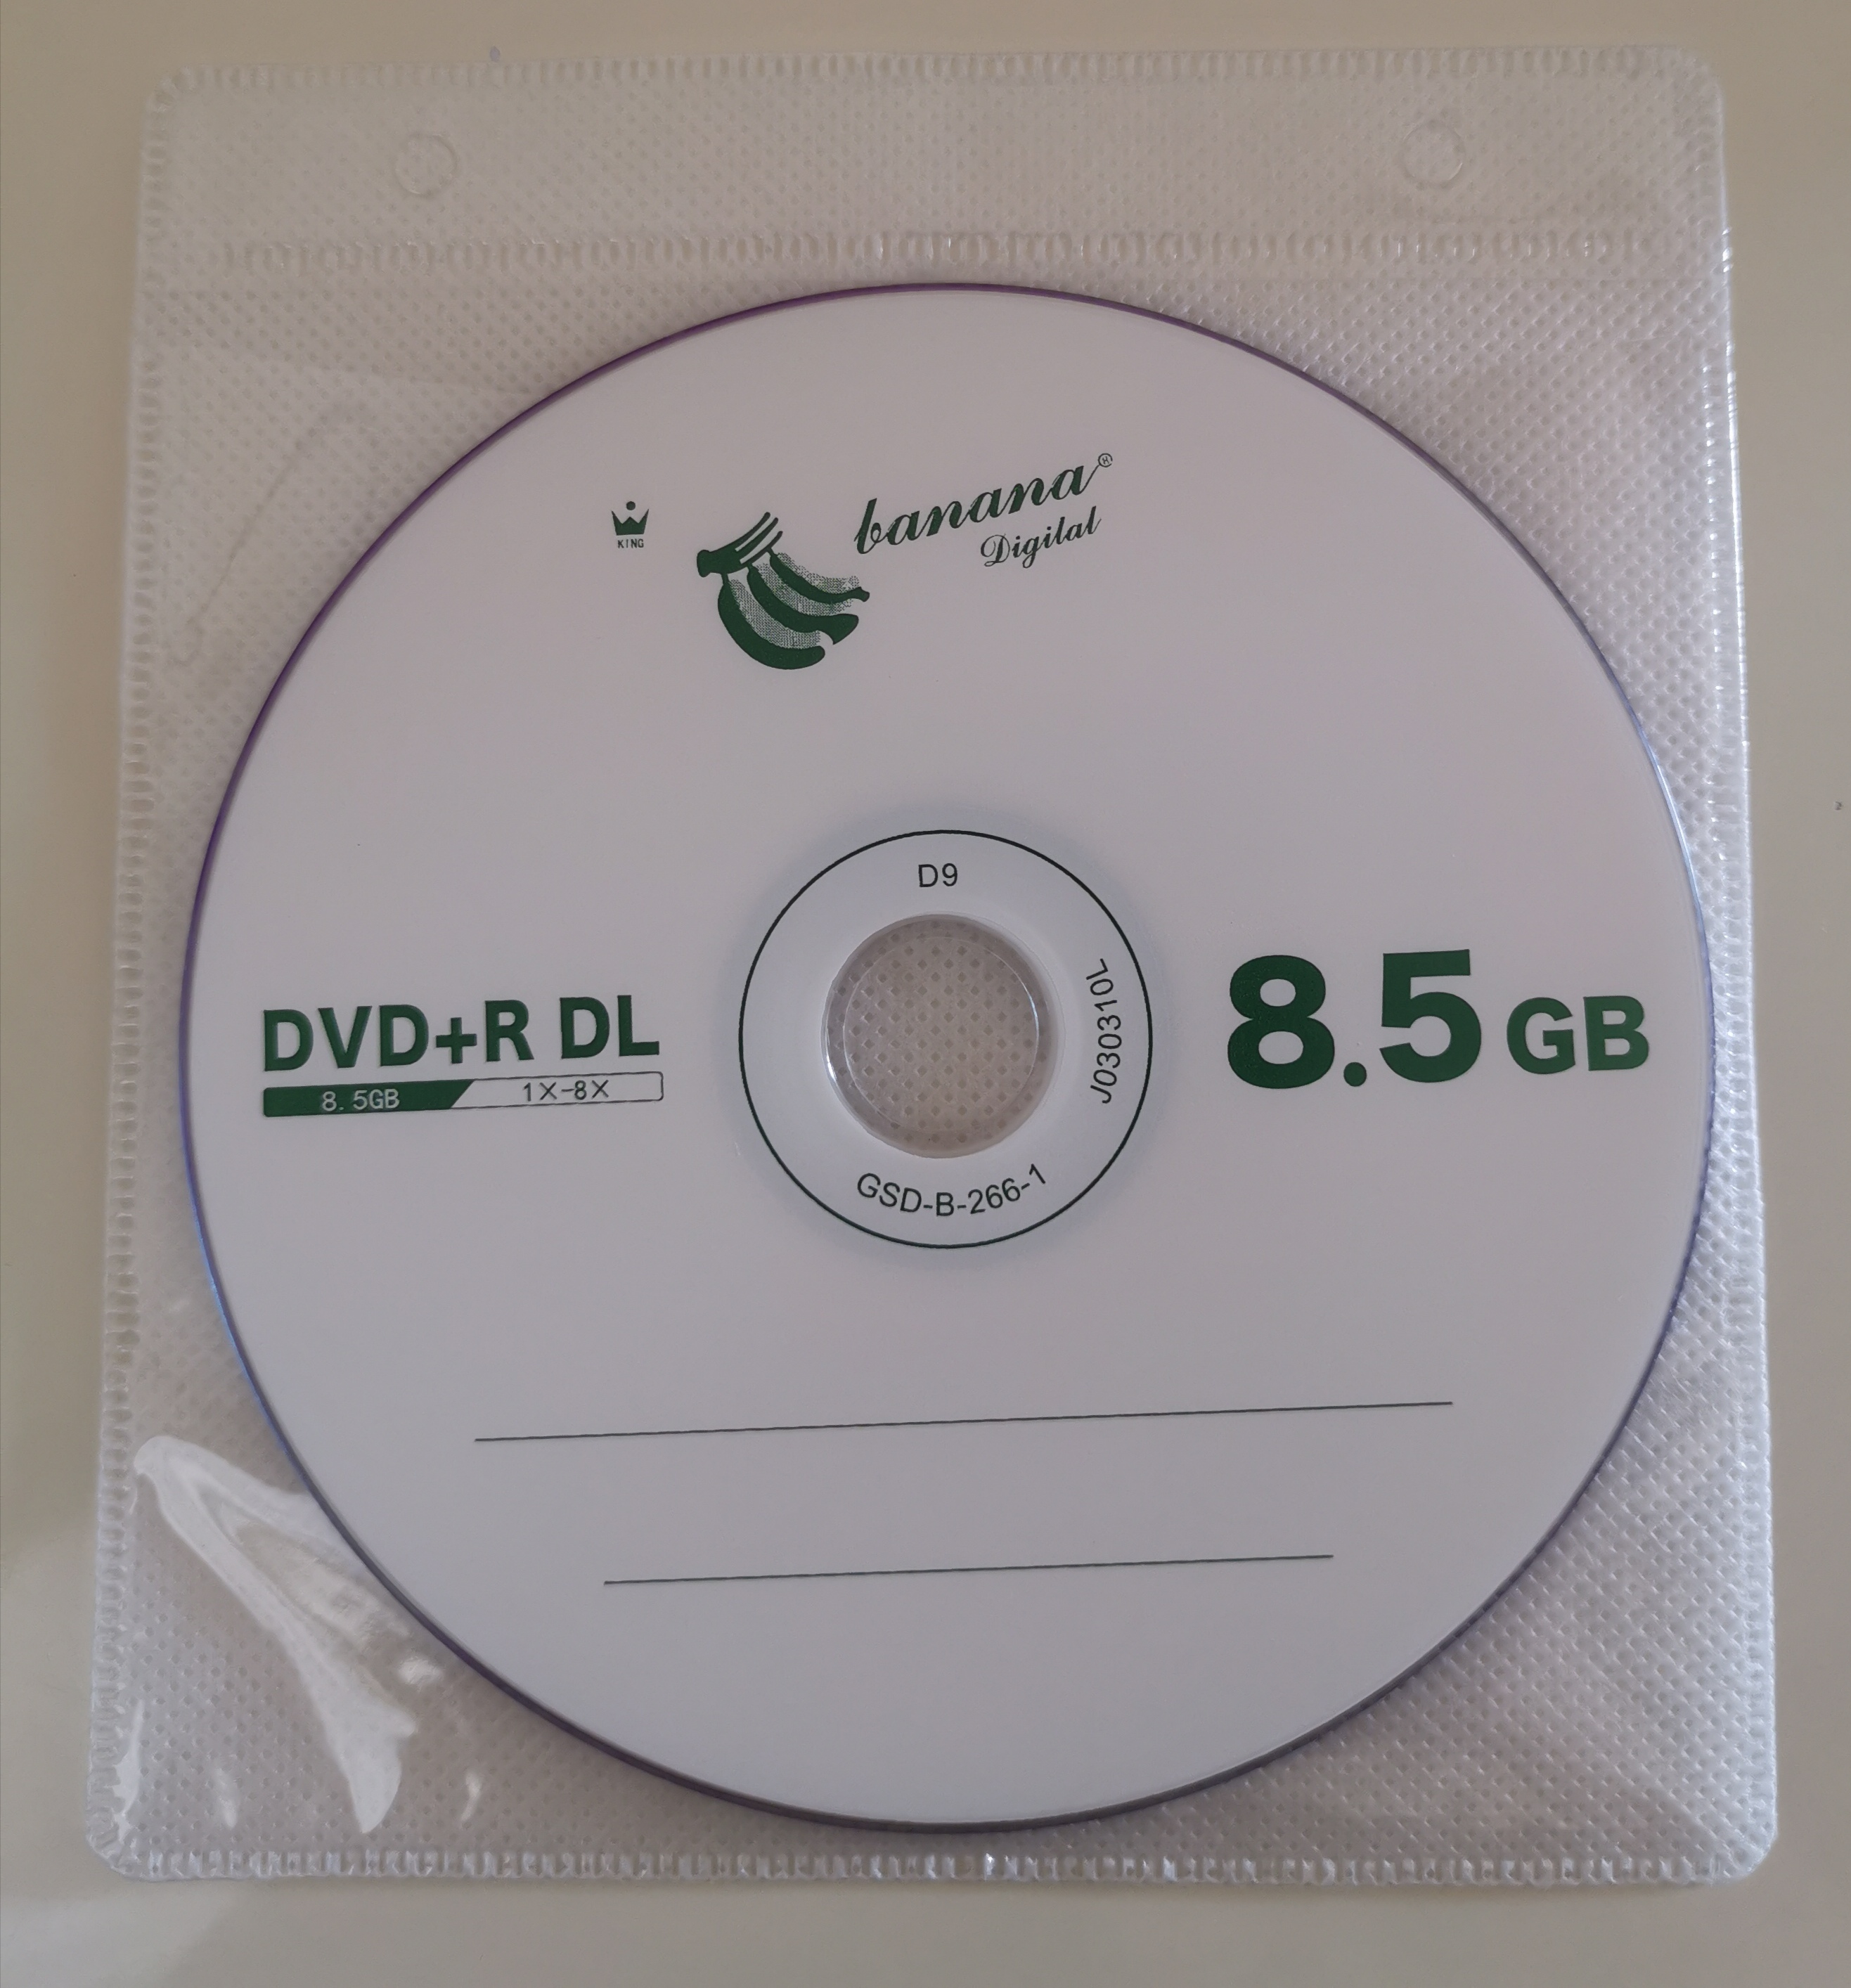 Wholesale DVD+R DL 8.5GB Dual Layer D9 8X 240min 10pcs/lot Free Shipping